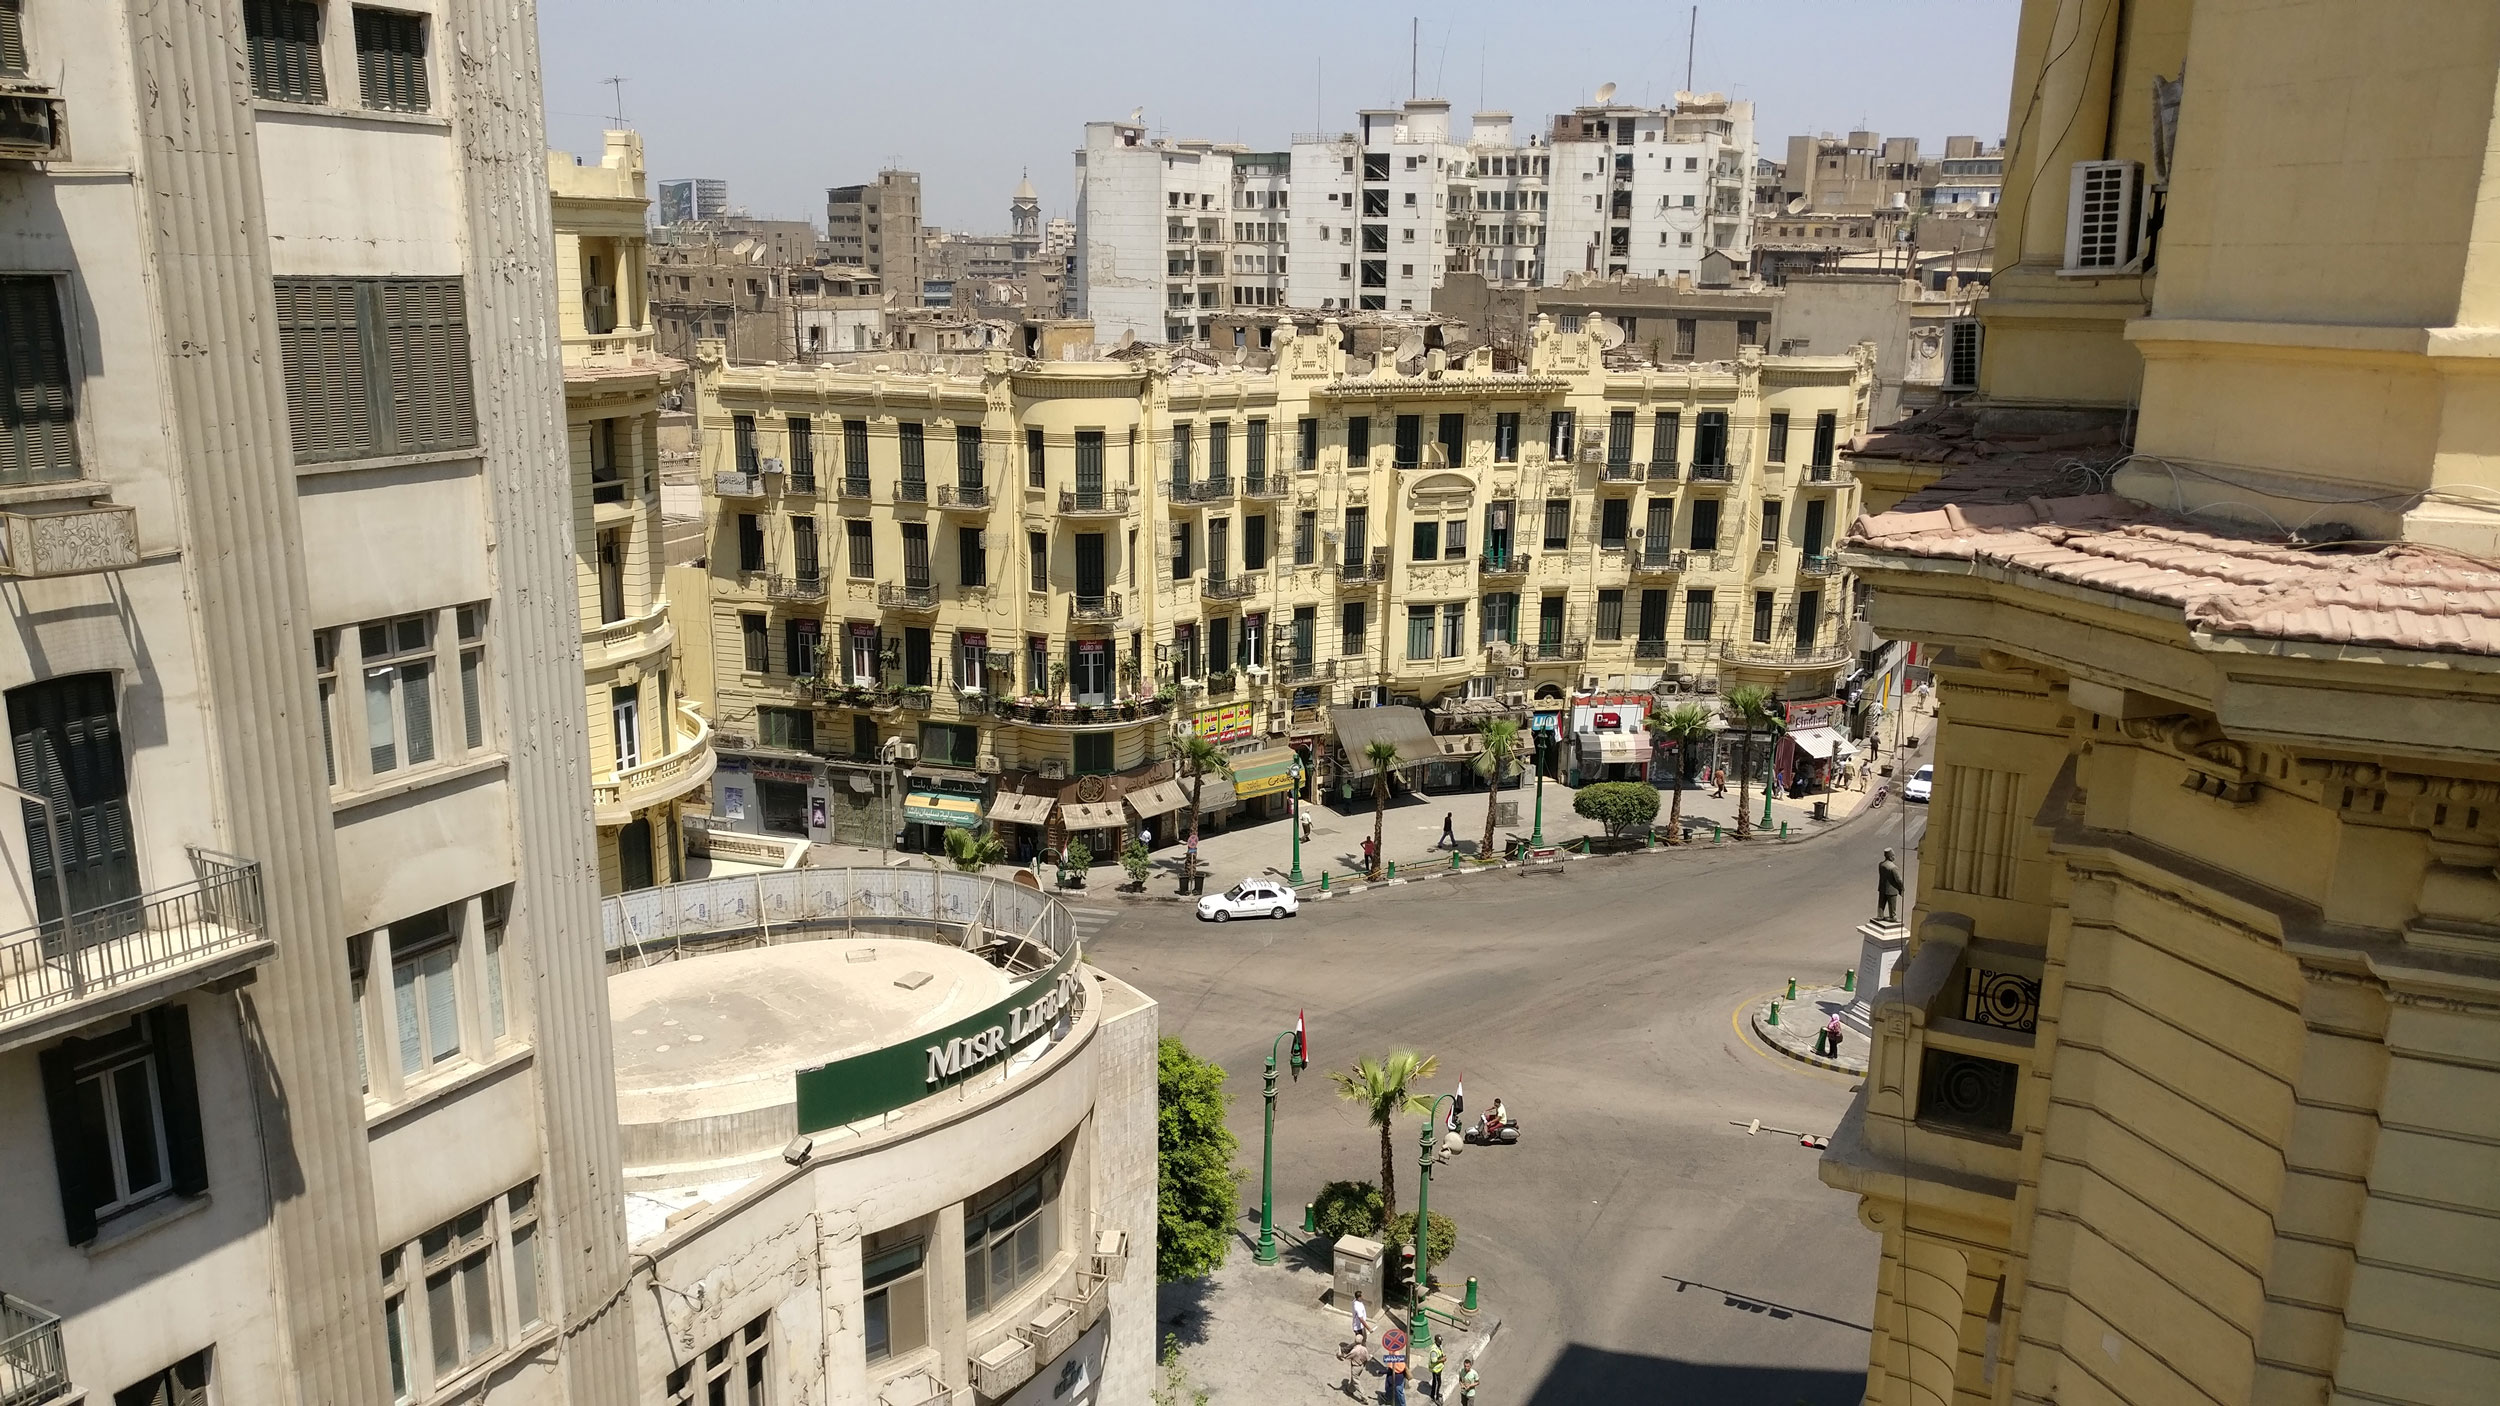 Talaat Harb Square, Downtown Cairo, Egypt